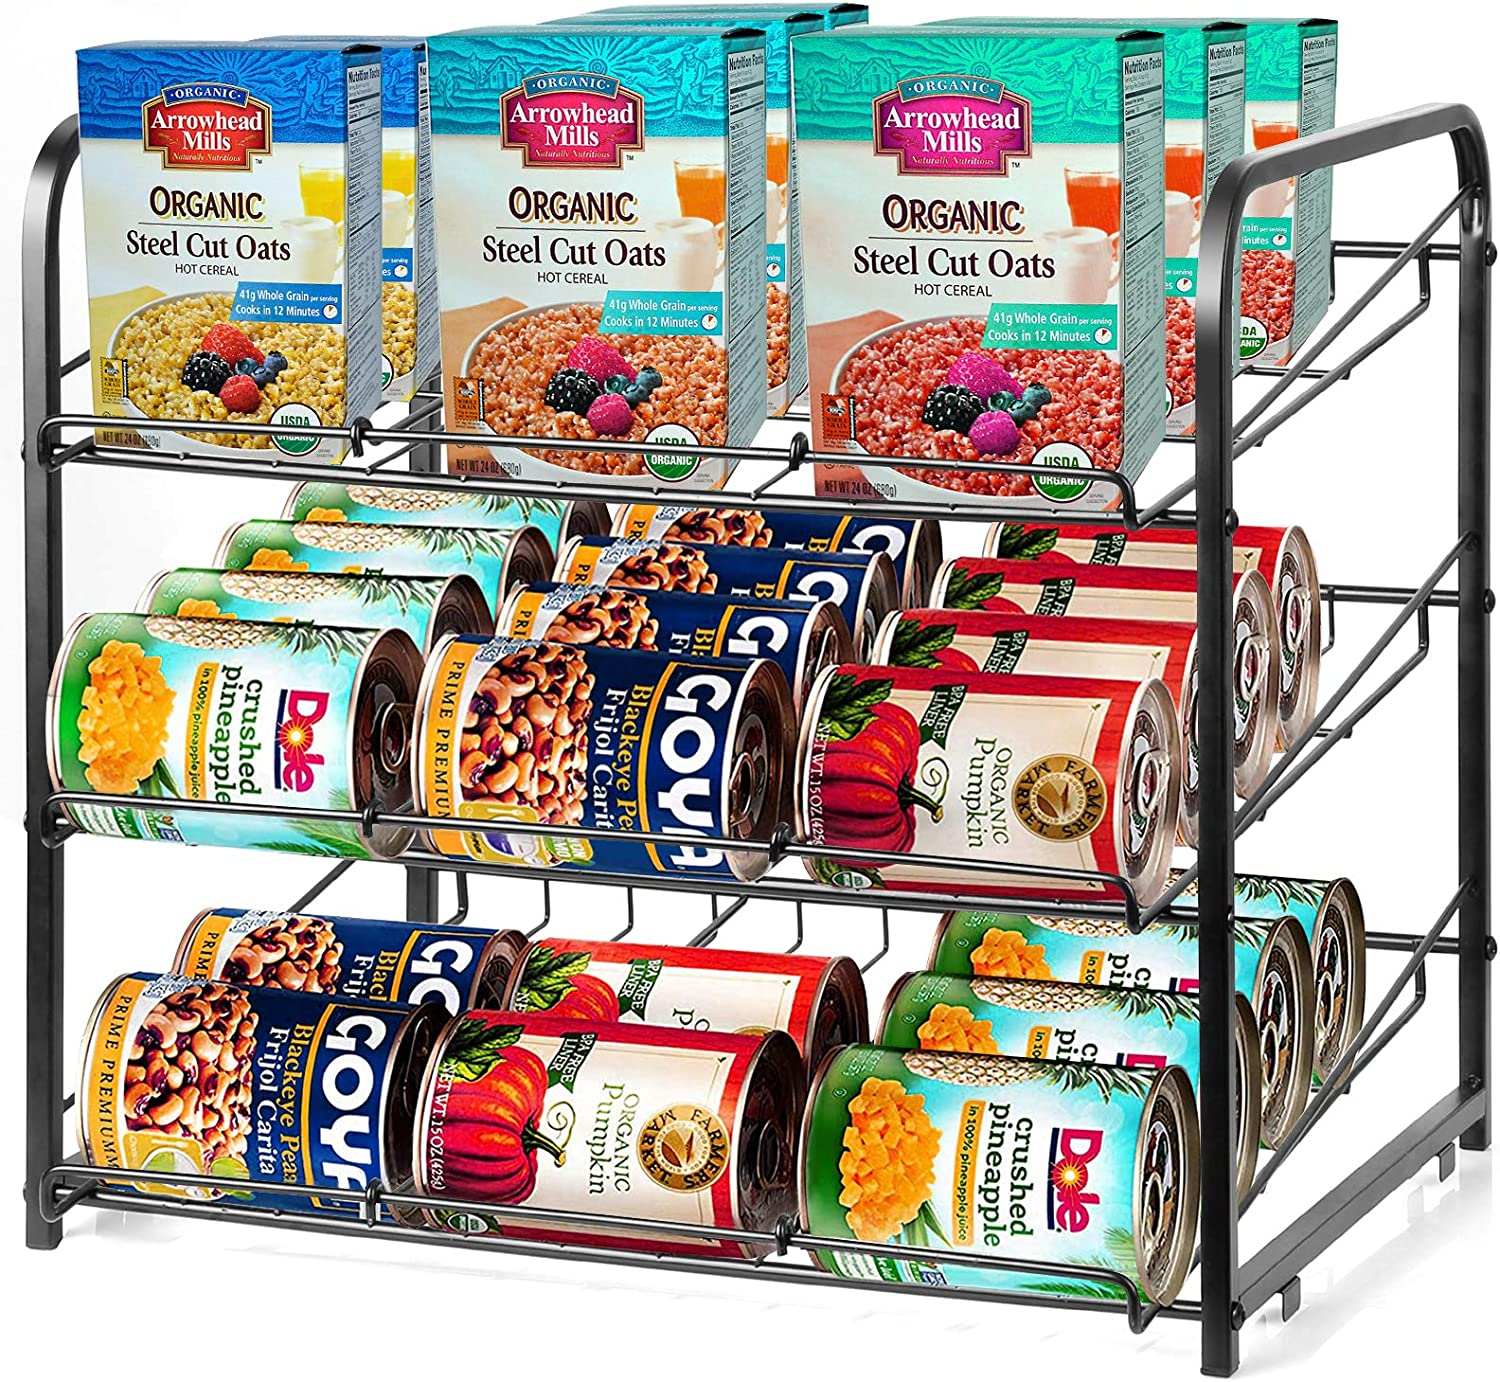 CRZDEAL Stackable Can Rack Organizer Canned Beverage Drink Pets Food Storage Dispenser Holds up to 36 Cans Great for the Kitchen Cabinet Pantry Closet (Black Finish)